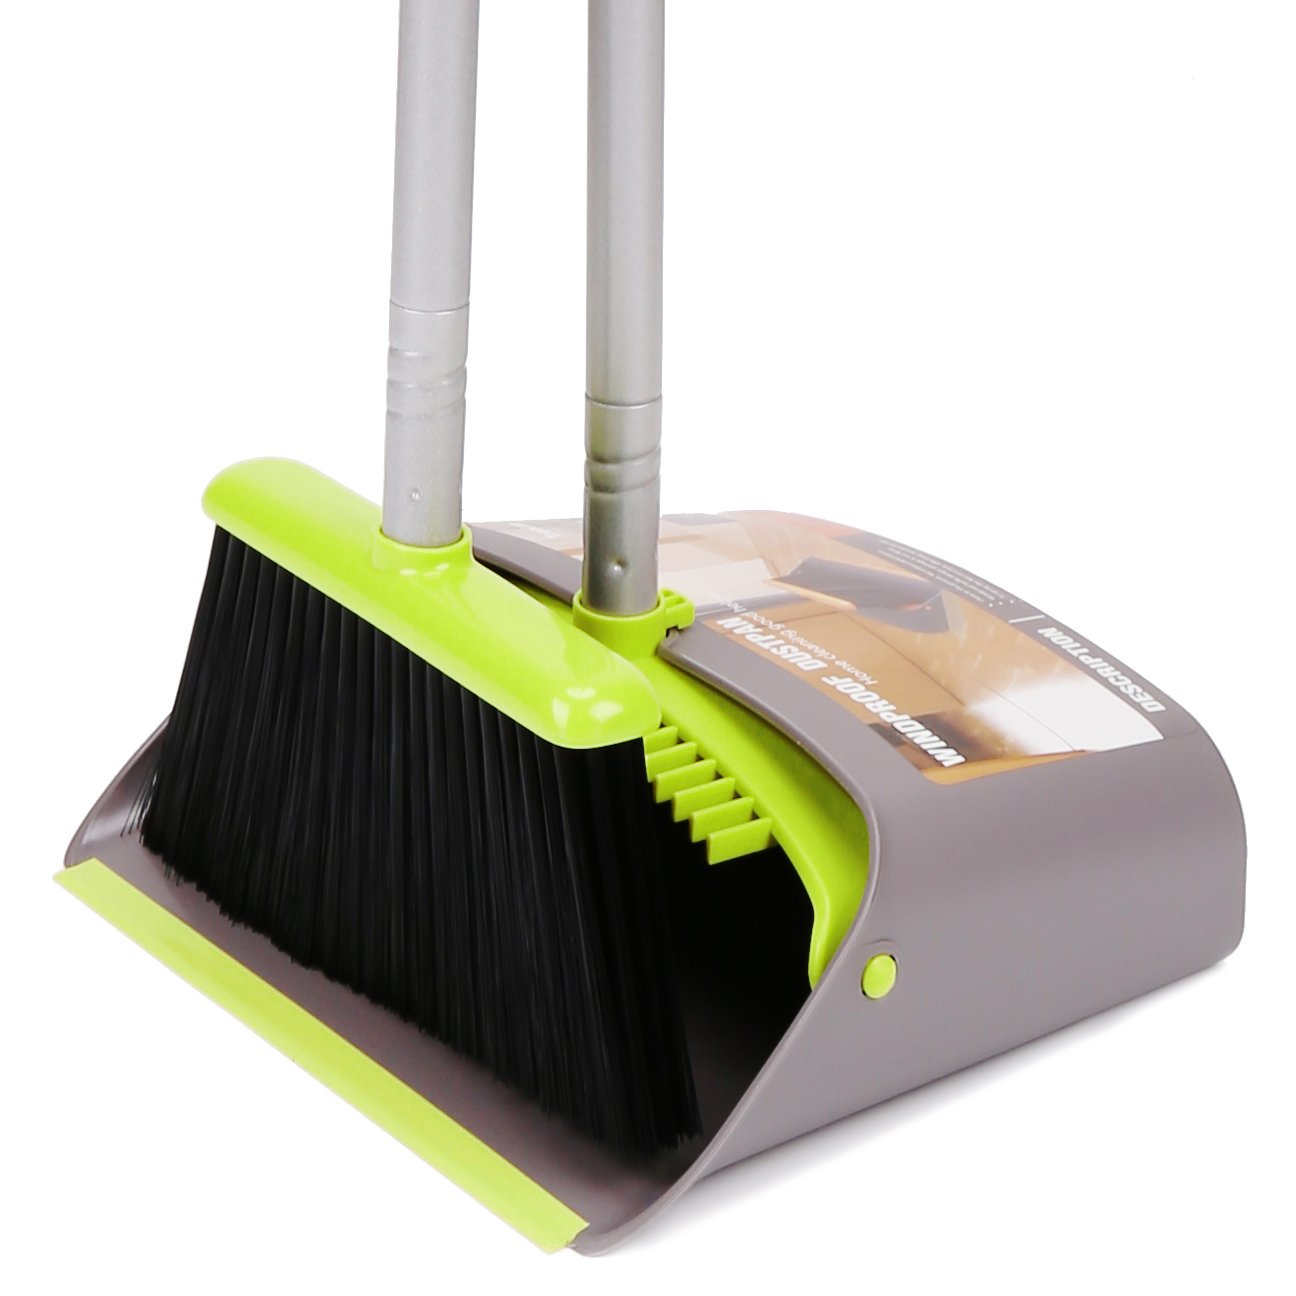 Broom and Dustpan/Dust Pan & Broom Combo Set with Long Handle For Home Kitchen Room Office Lobby Floor Use Upright Stand Up Clean